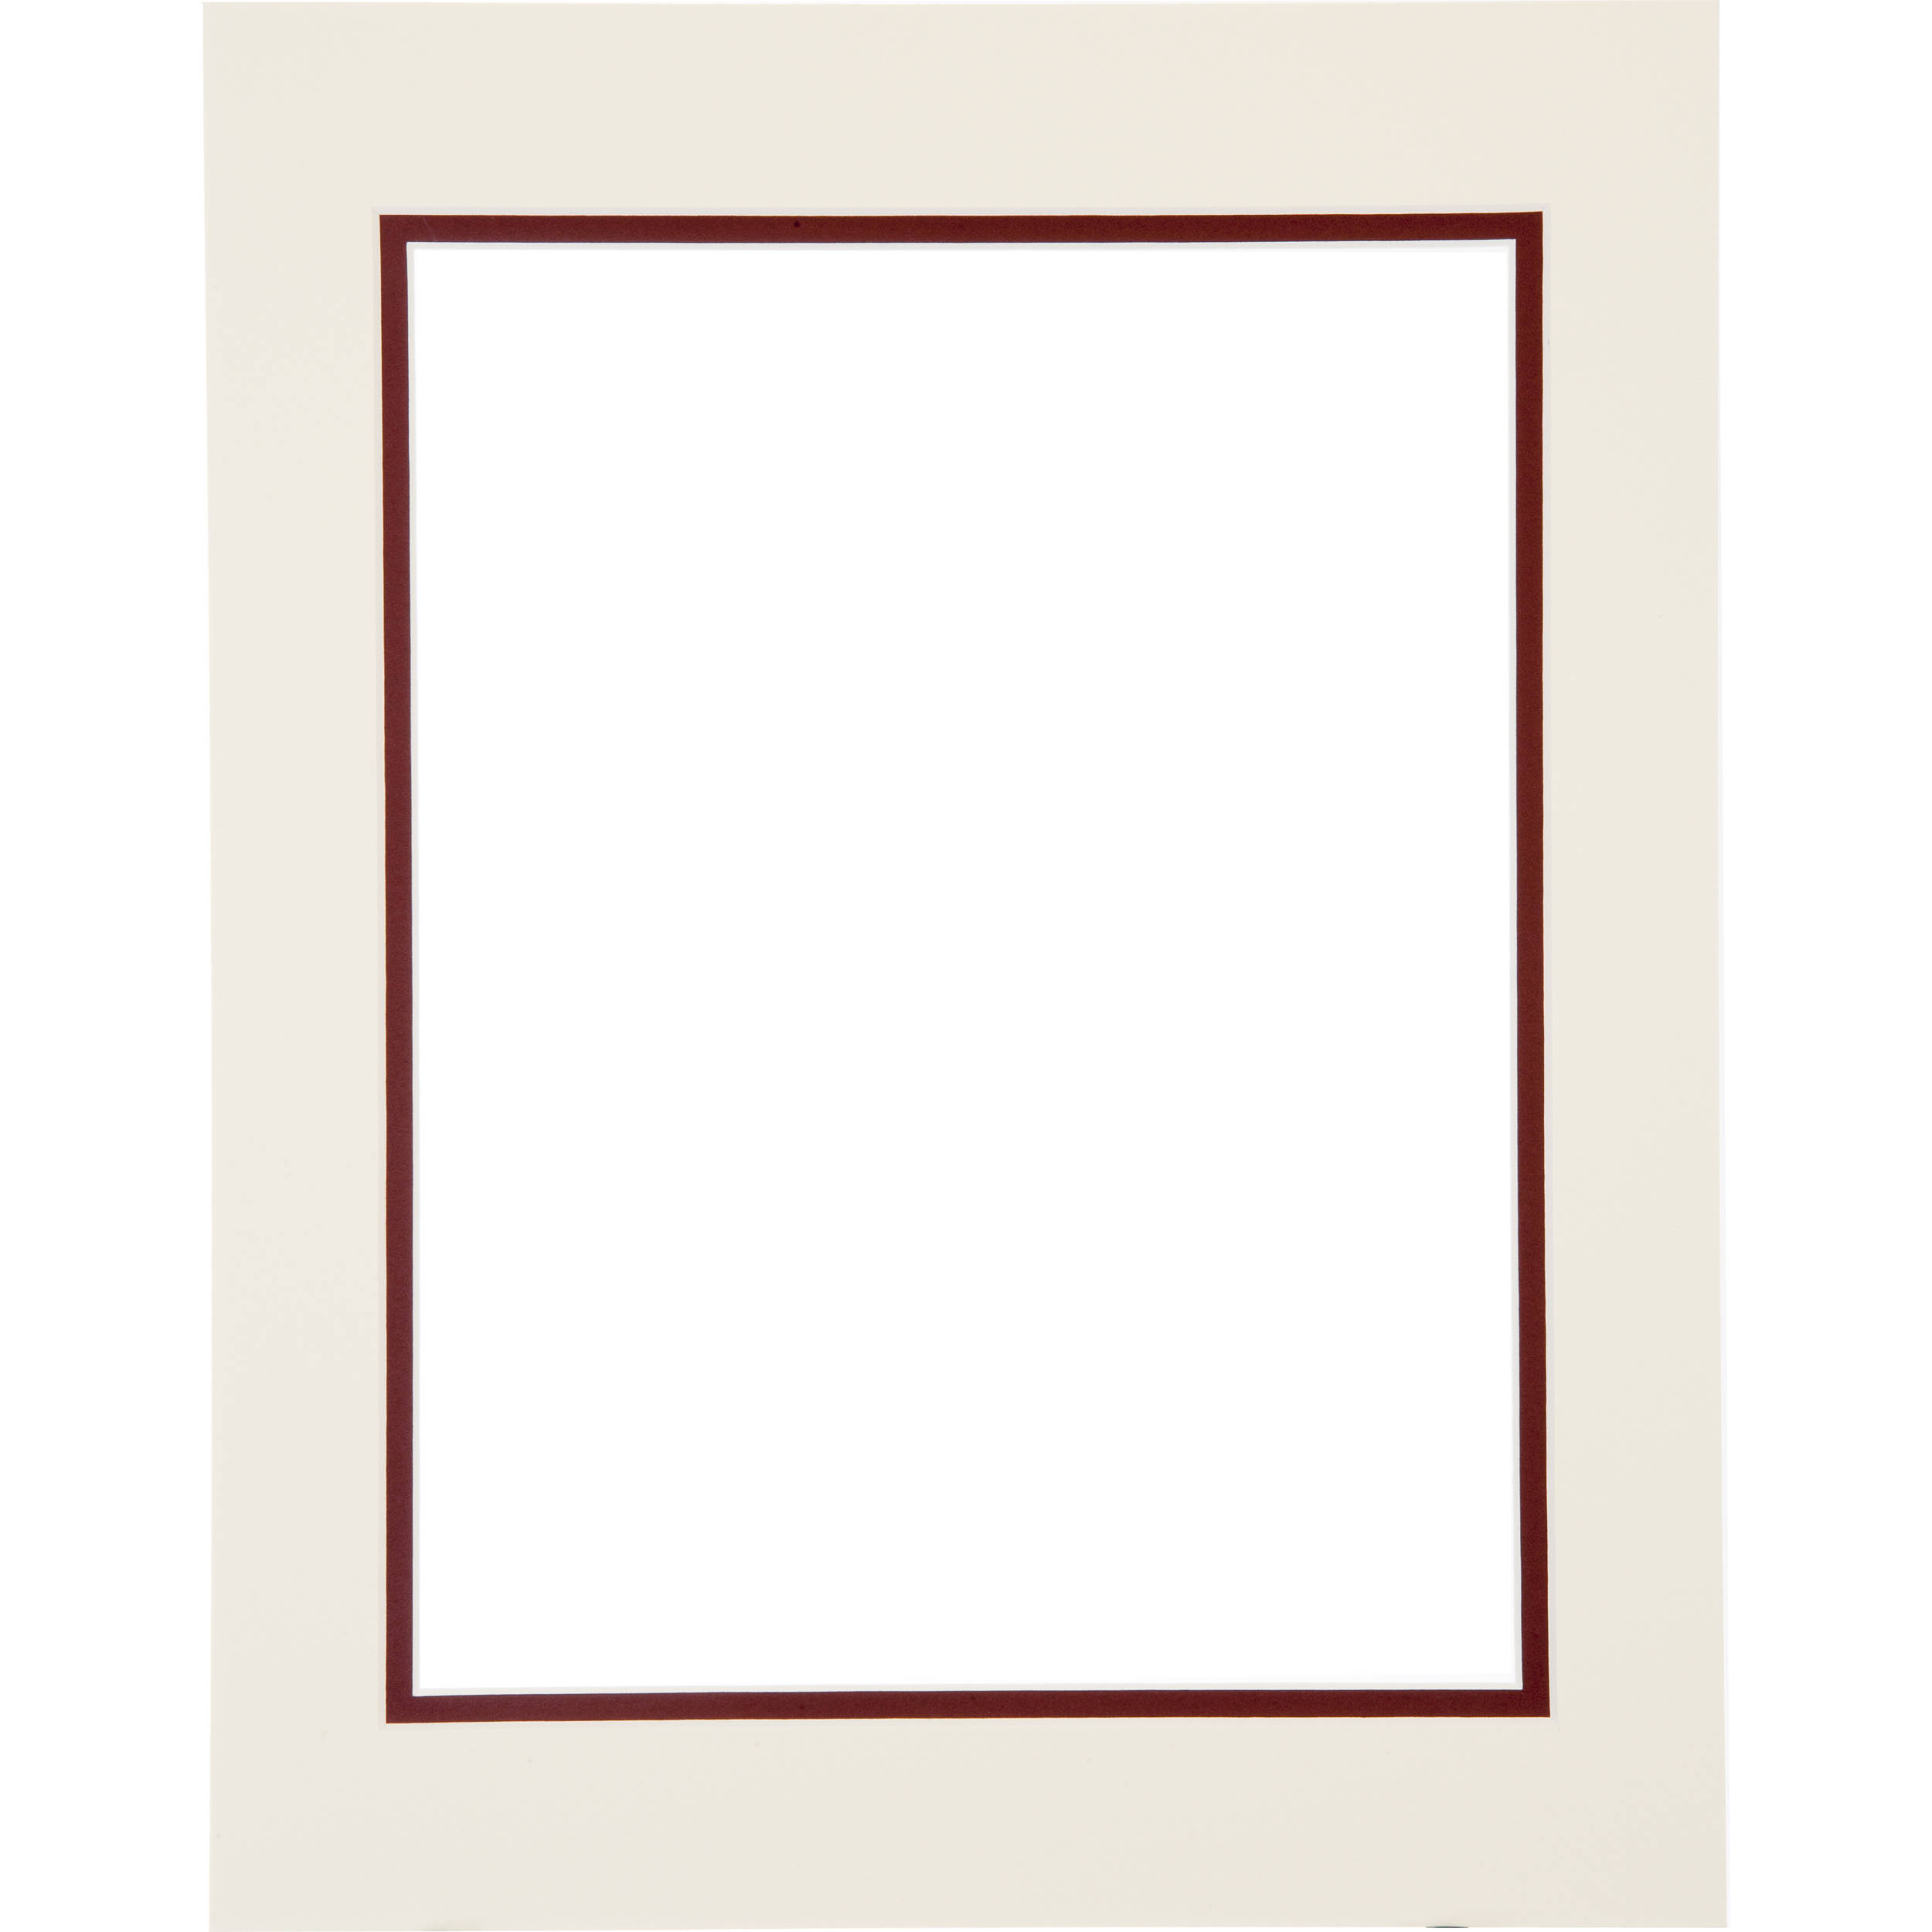 Logan Graphics 11 X 14 Double Mat Frame With 85 M6033 45